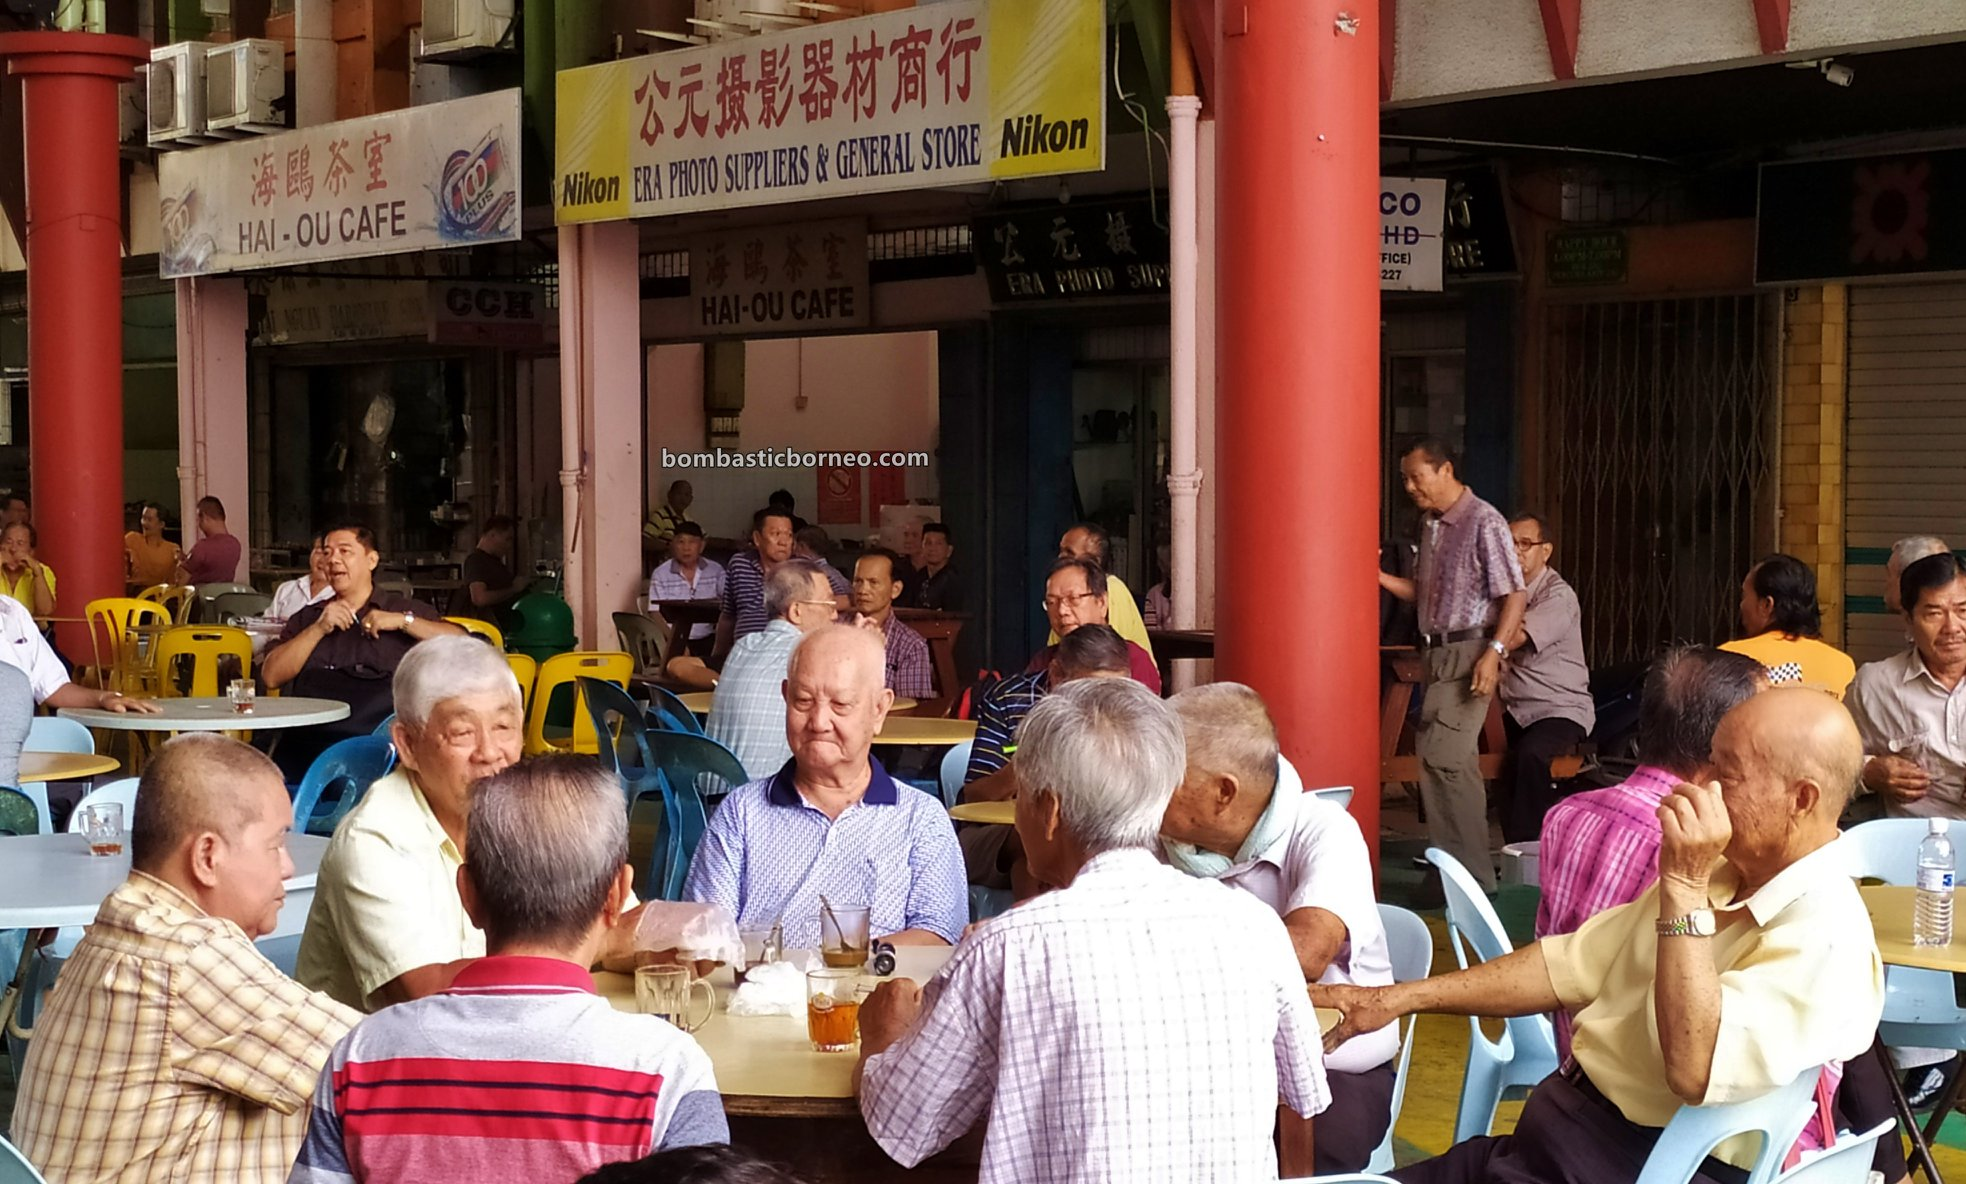 backpackers, destination, Discover Miri City, exploration, Senior Citizen Street, tourist attraction, travel guide, Borneo, 探索婆罗洲游踪, 马来西亚砂拉越, 美里老人街旅游景点